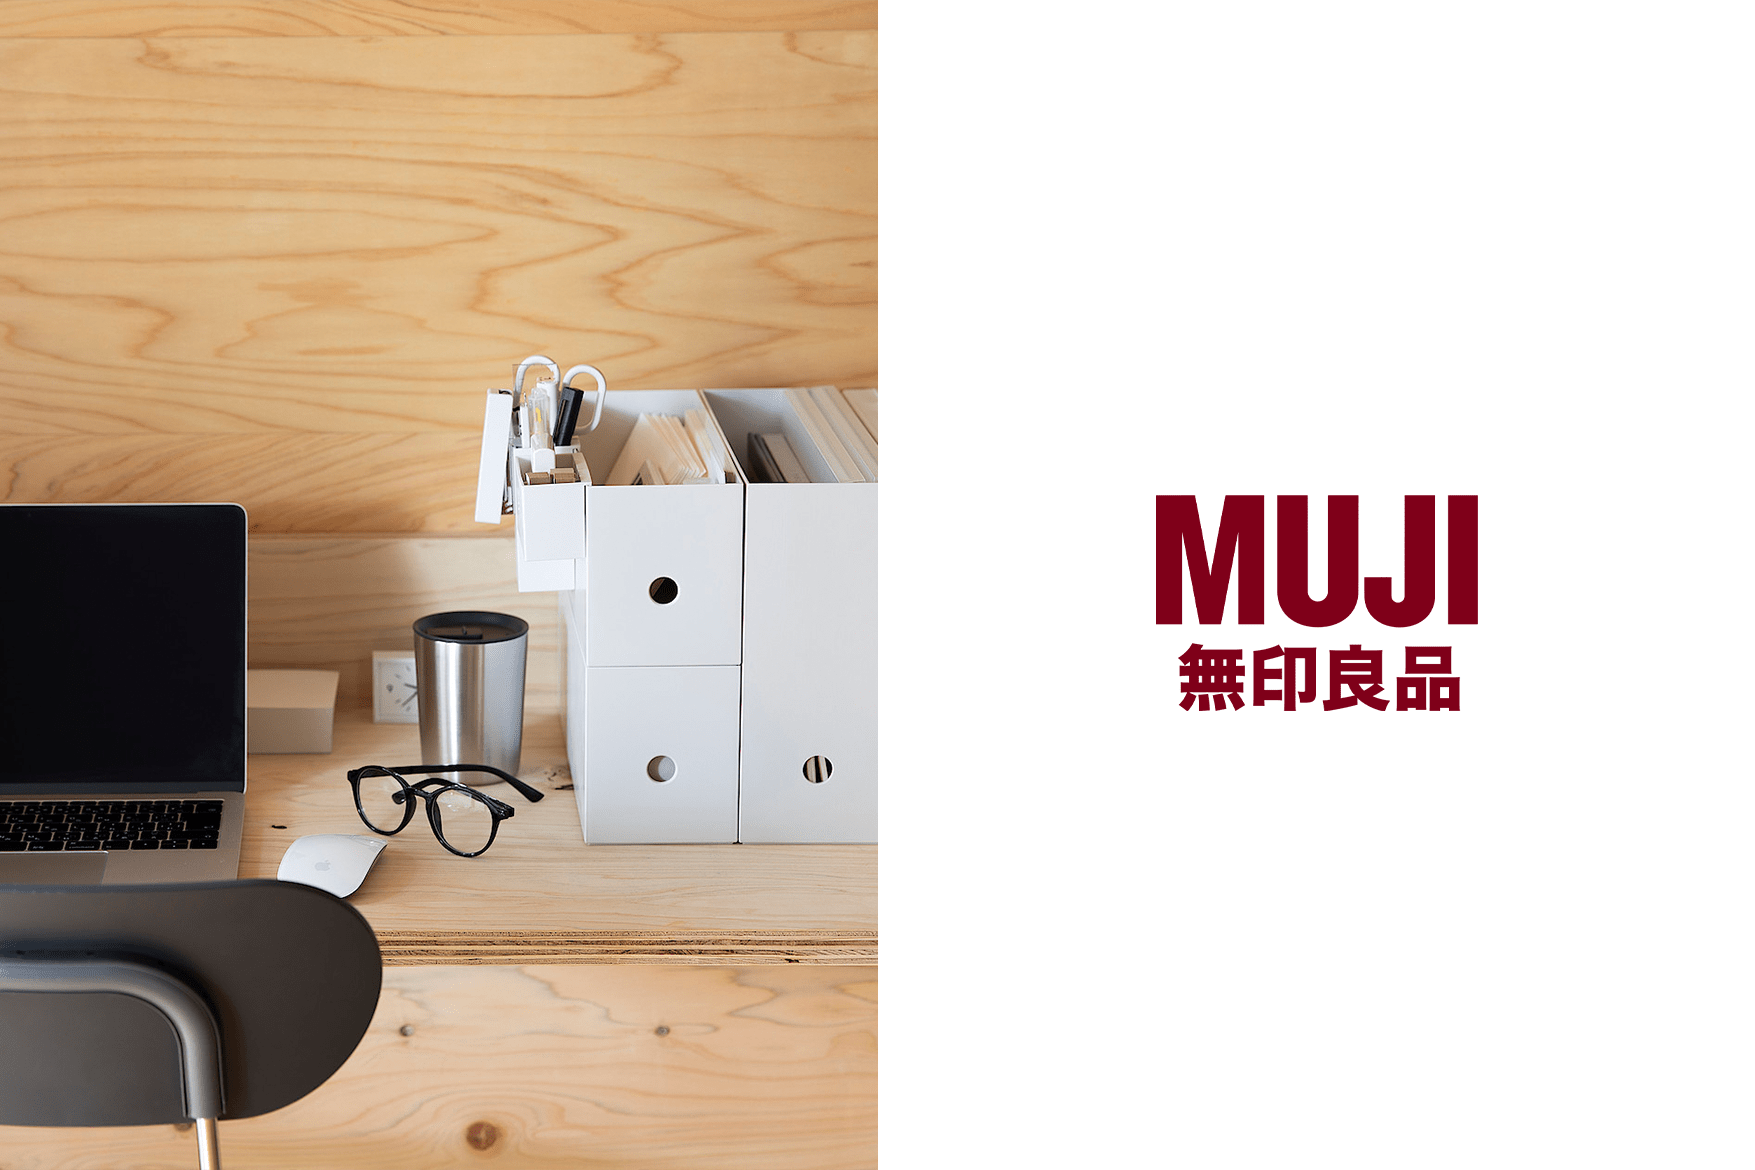 6 highly recommended stationaries from Muji